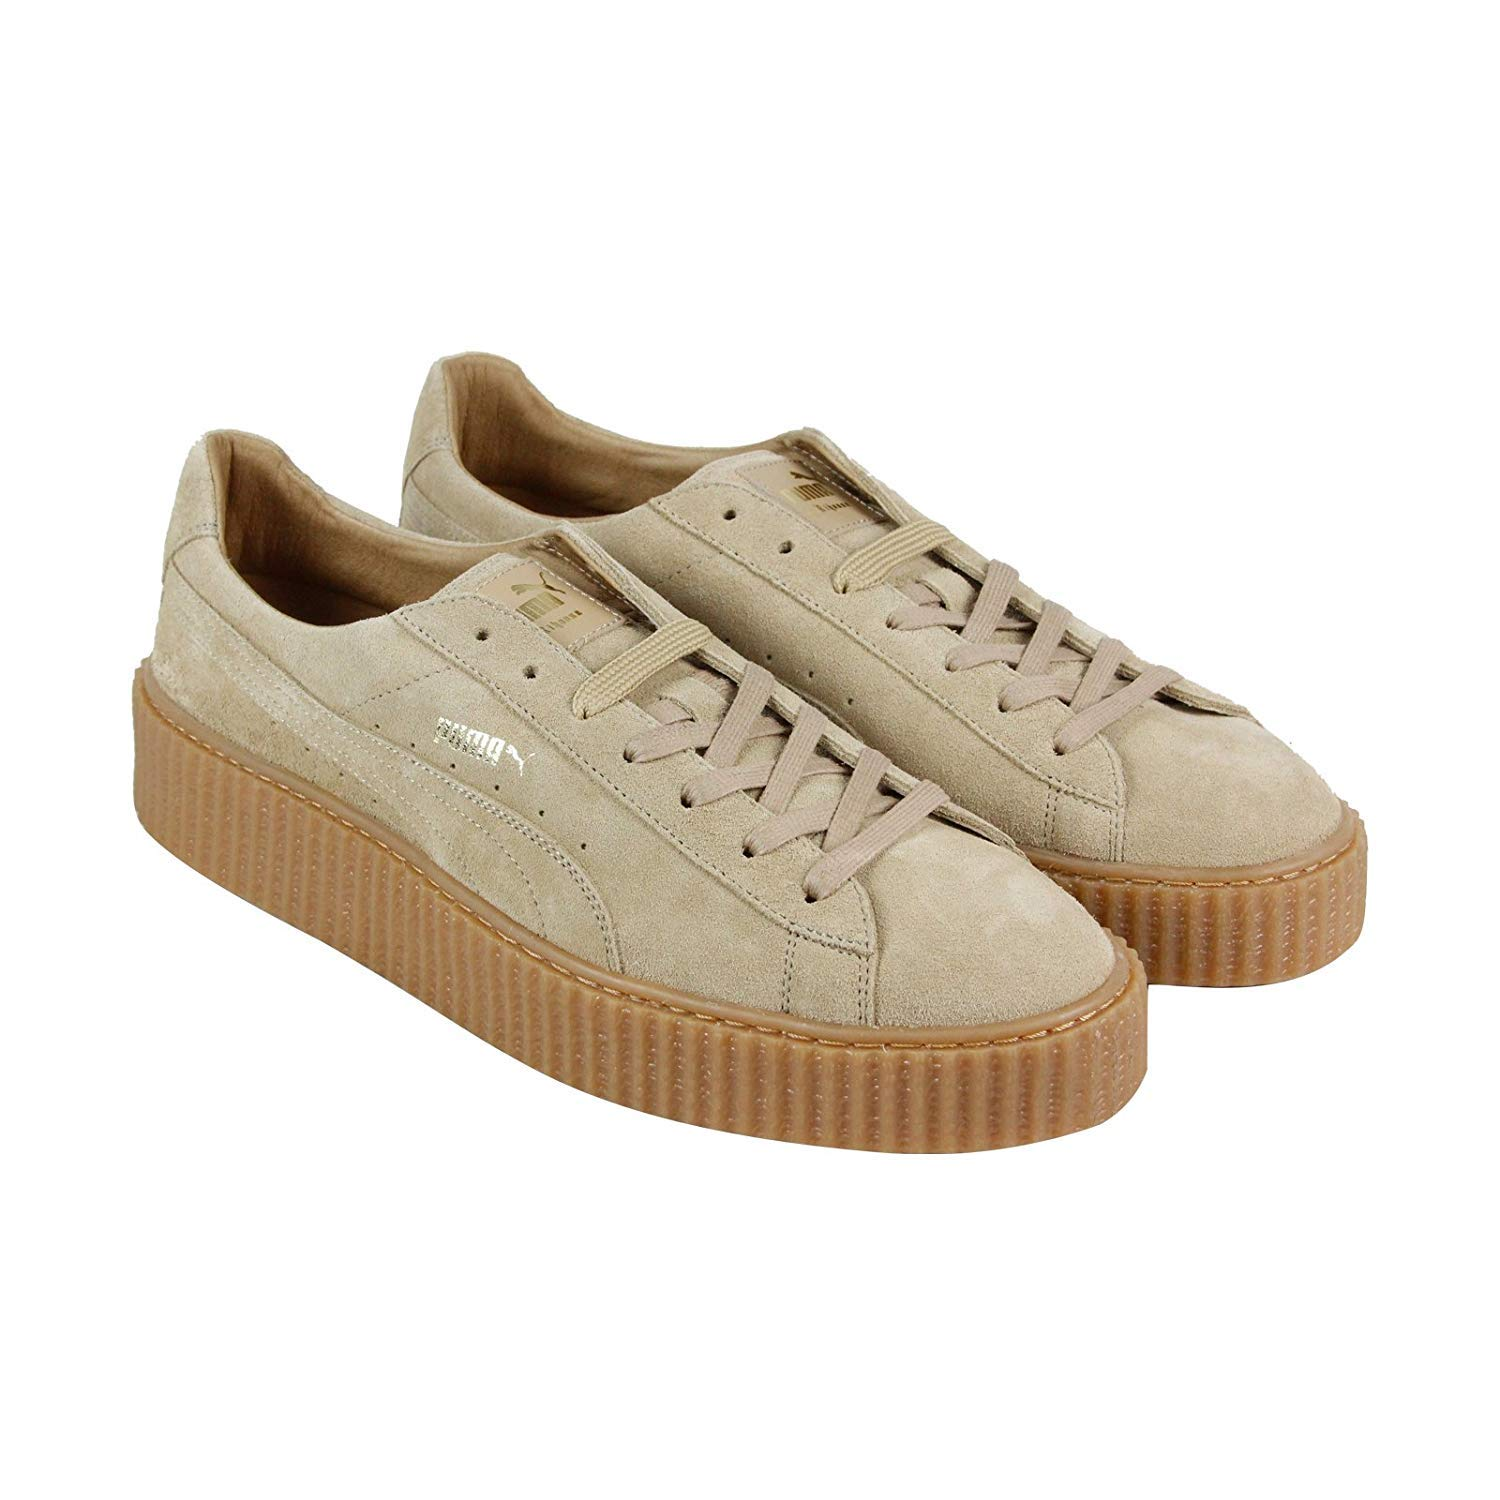 best website 0849f 4791e Puma Mens Fenty by Rihanna Tan Suede Creepers 36217804 ...